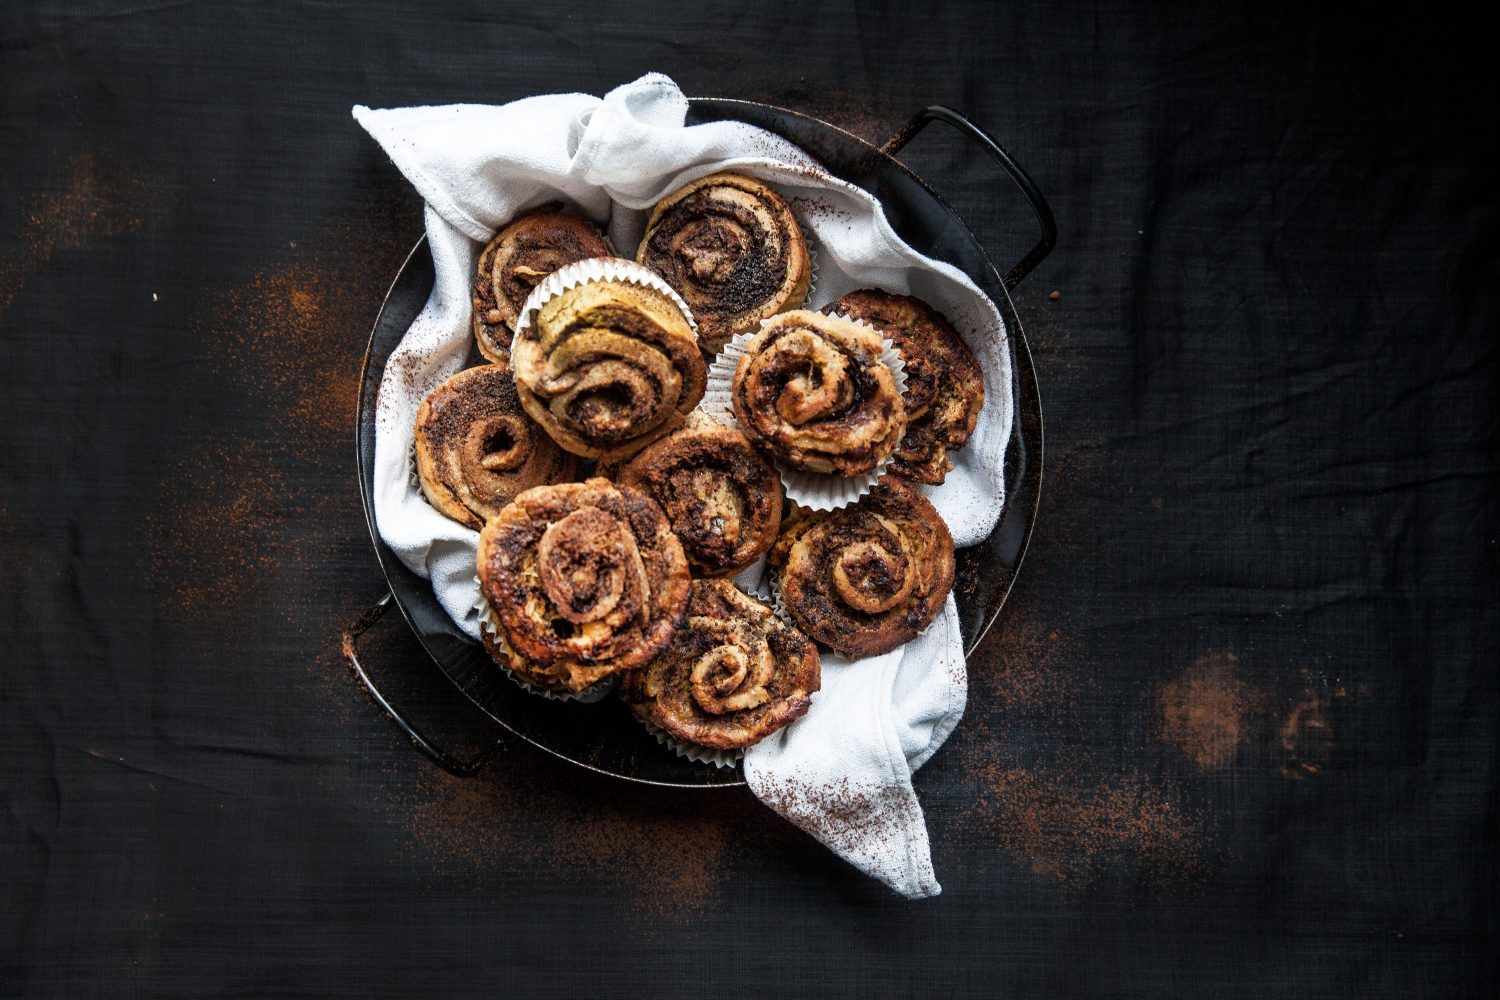 Gluten-free Apple and Cinnamon Buns